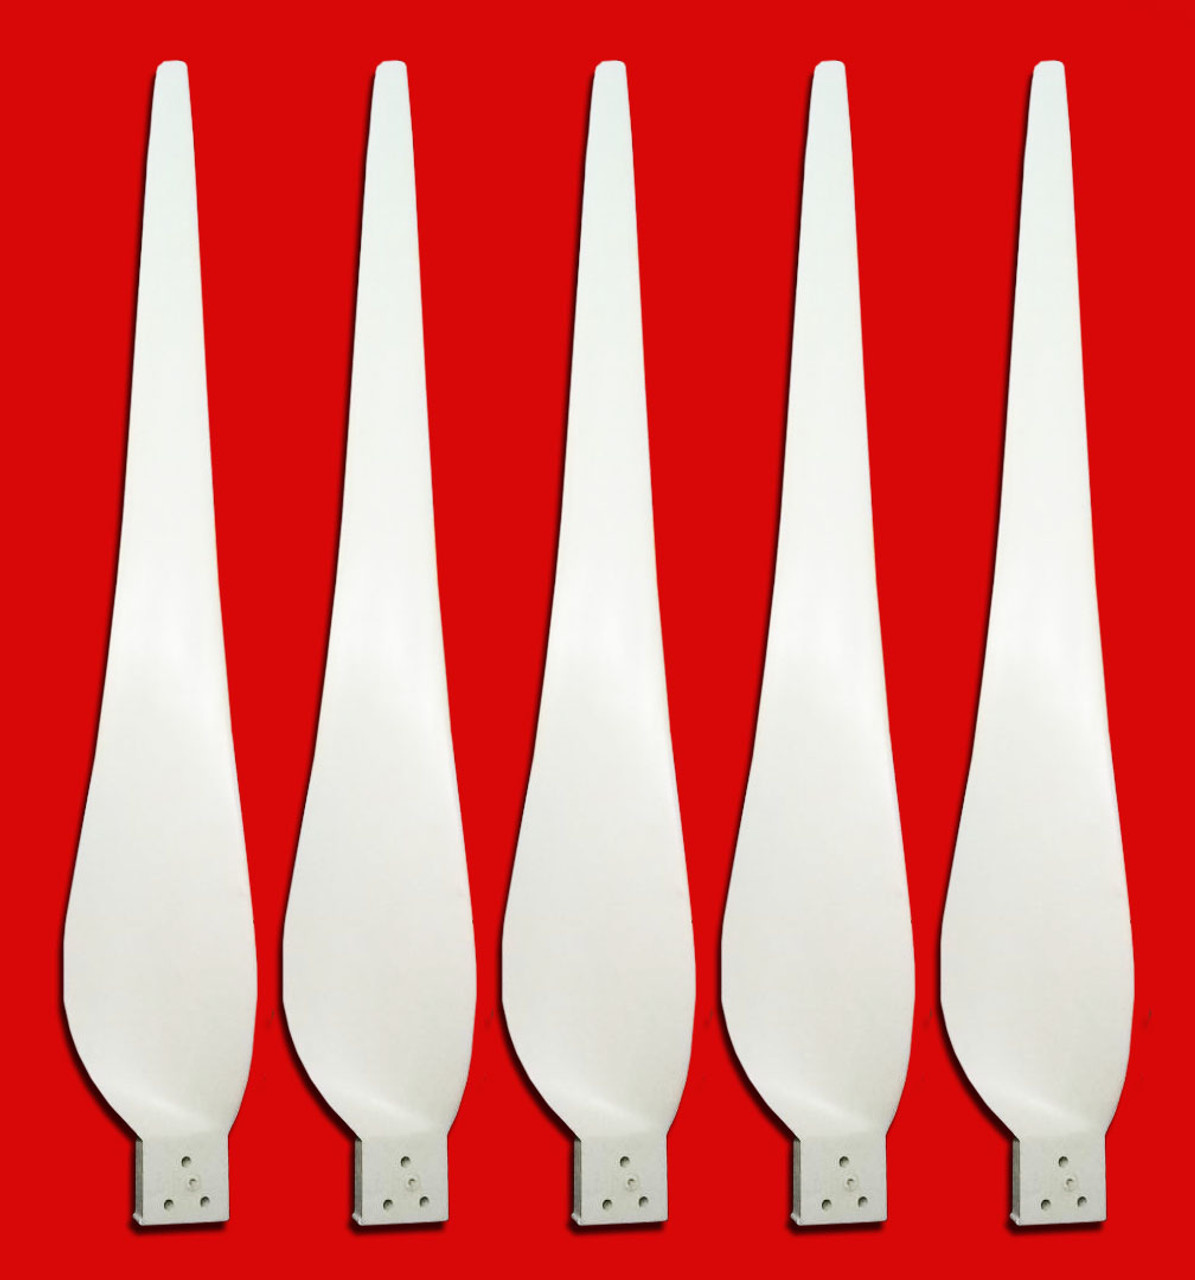 Hurricane Wind Power (Set of 5) 40 Inch Wind Turbine Generator Stealth Storm Wind Turbine Blade Set